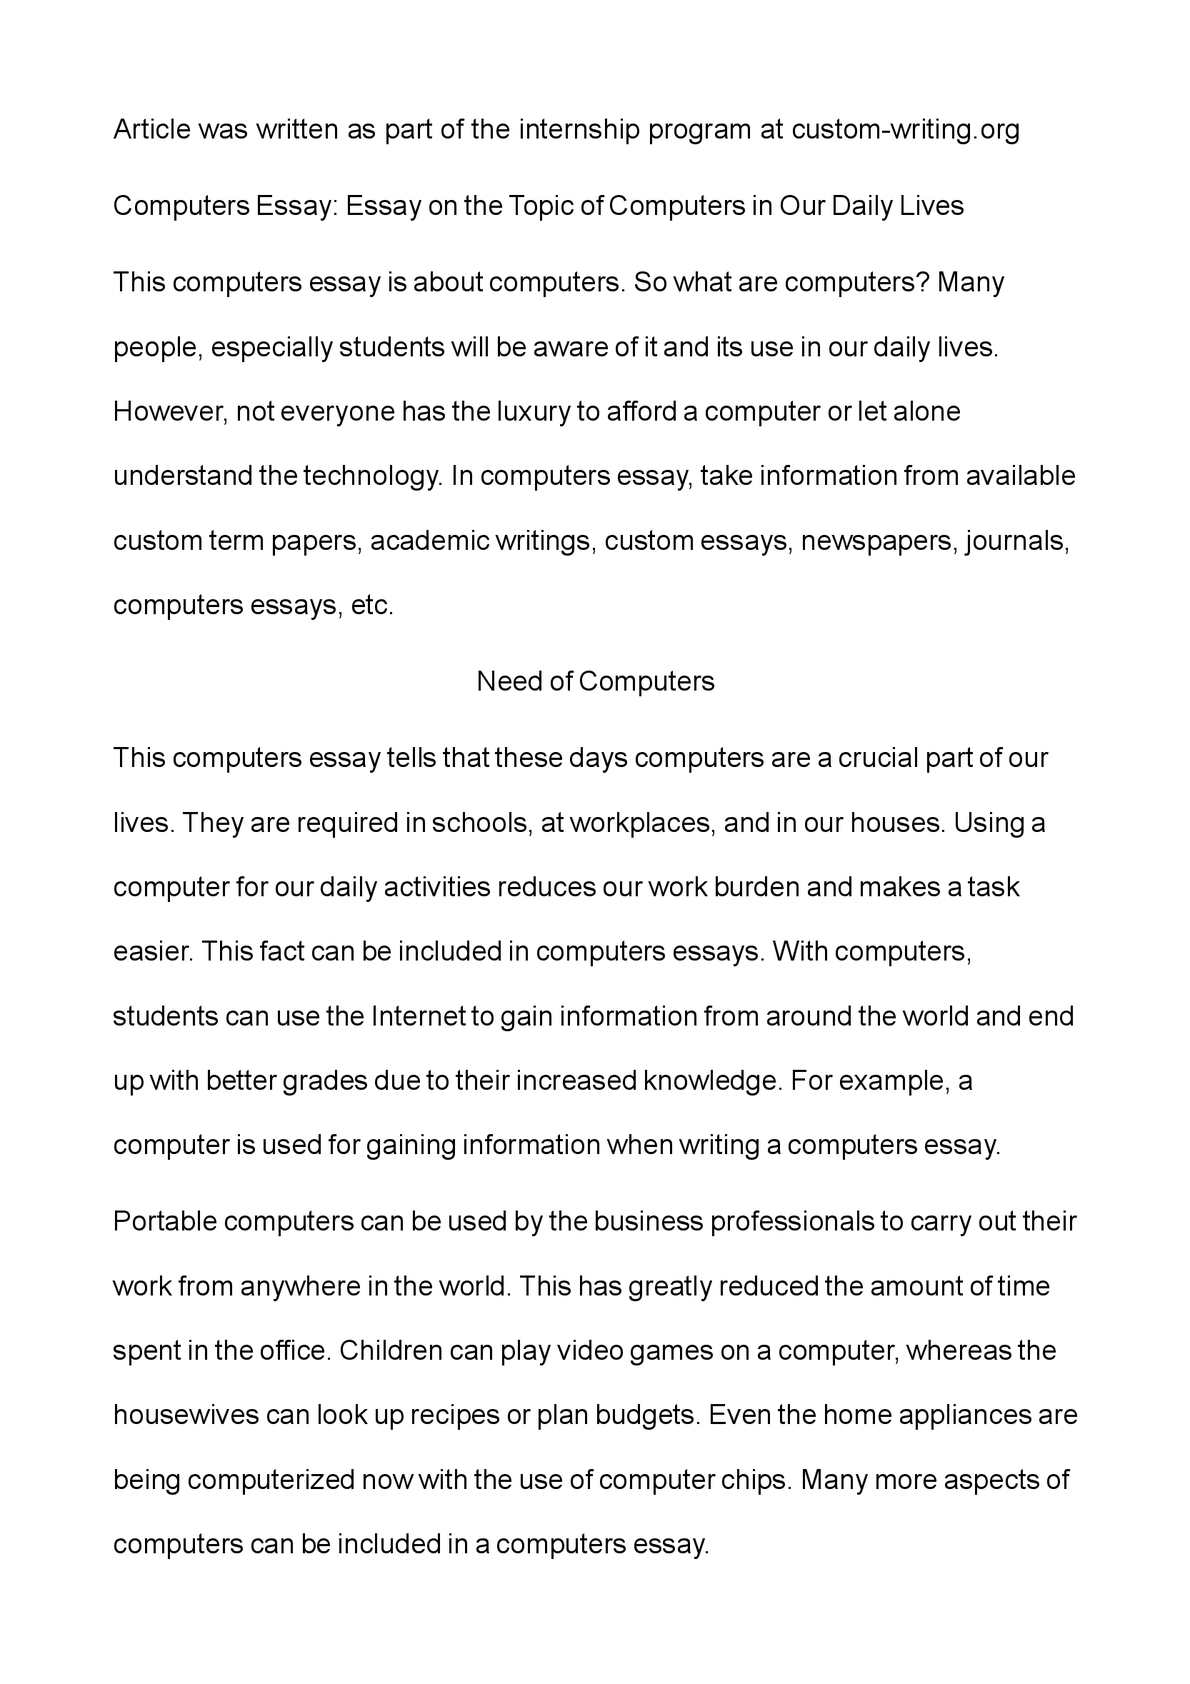 calamo   computers essay essay on the topic of computers in our  calamo   computers essay essay on the topic of computers in our daily  lives